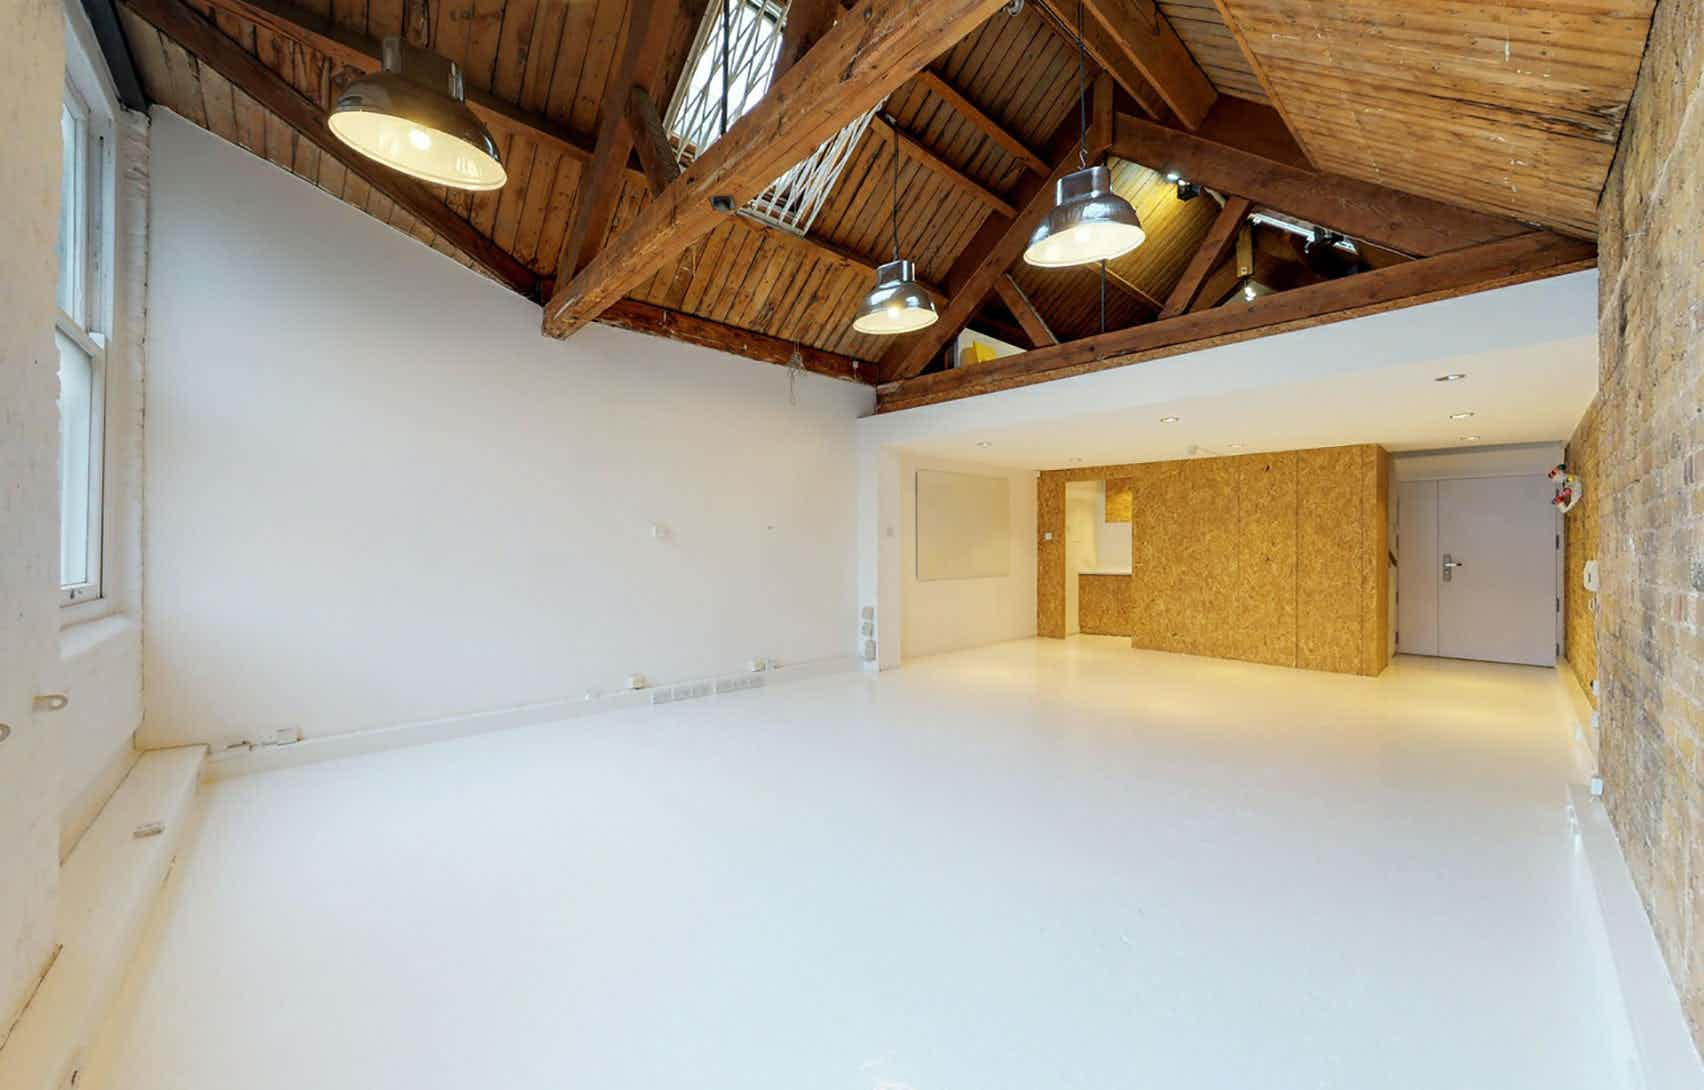 Whole Space, Willow Street